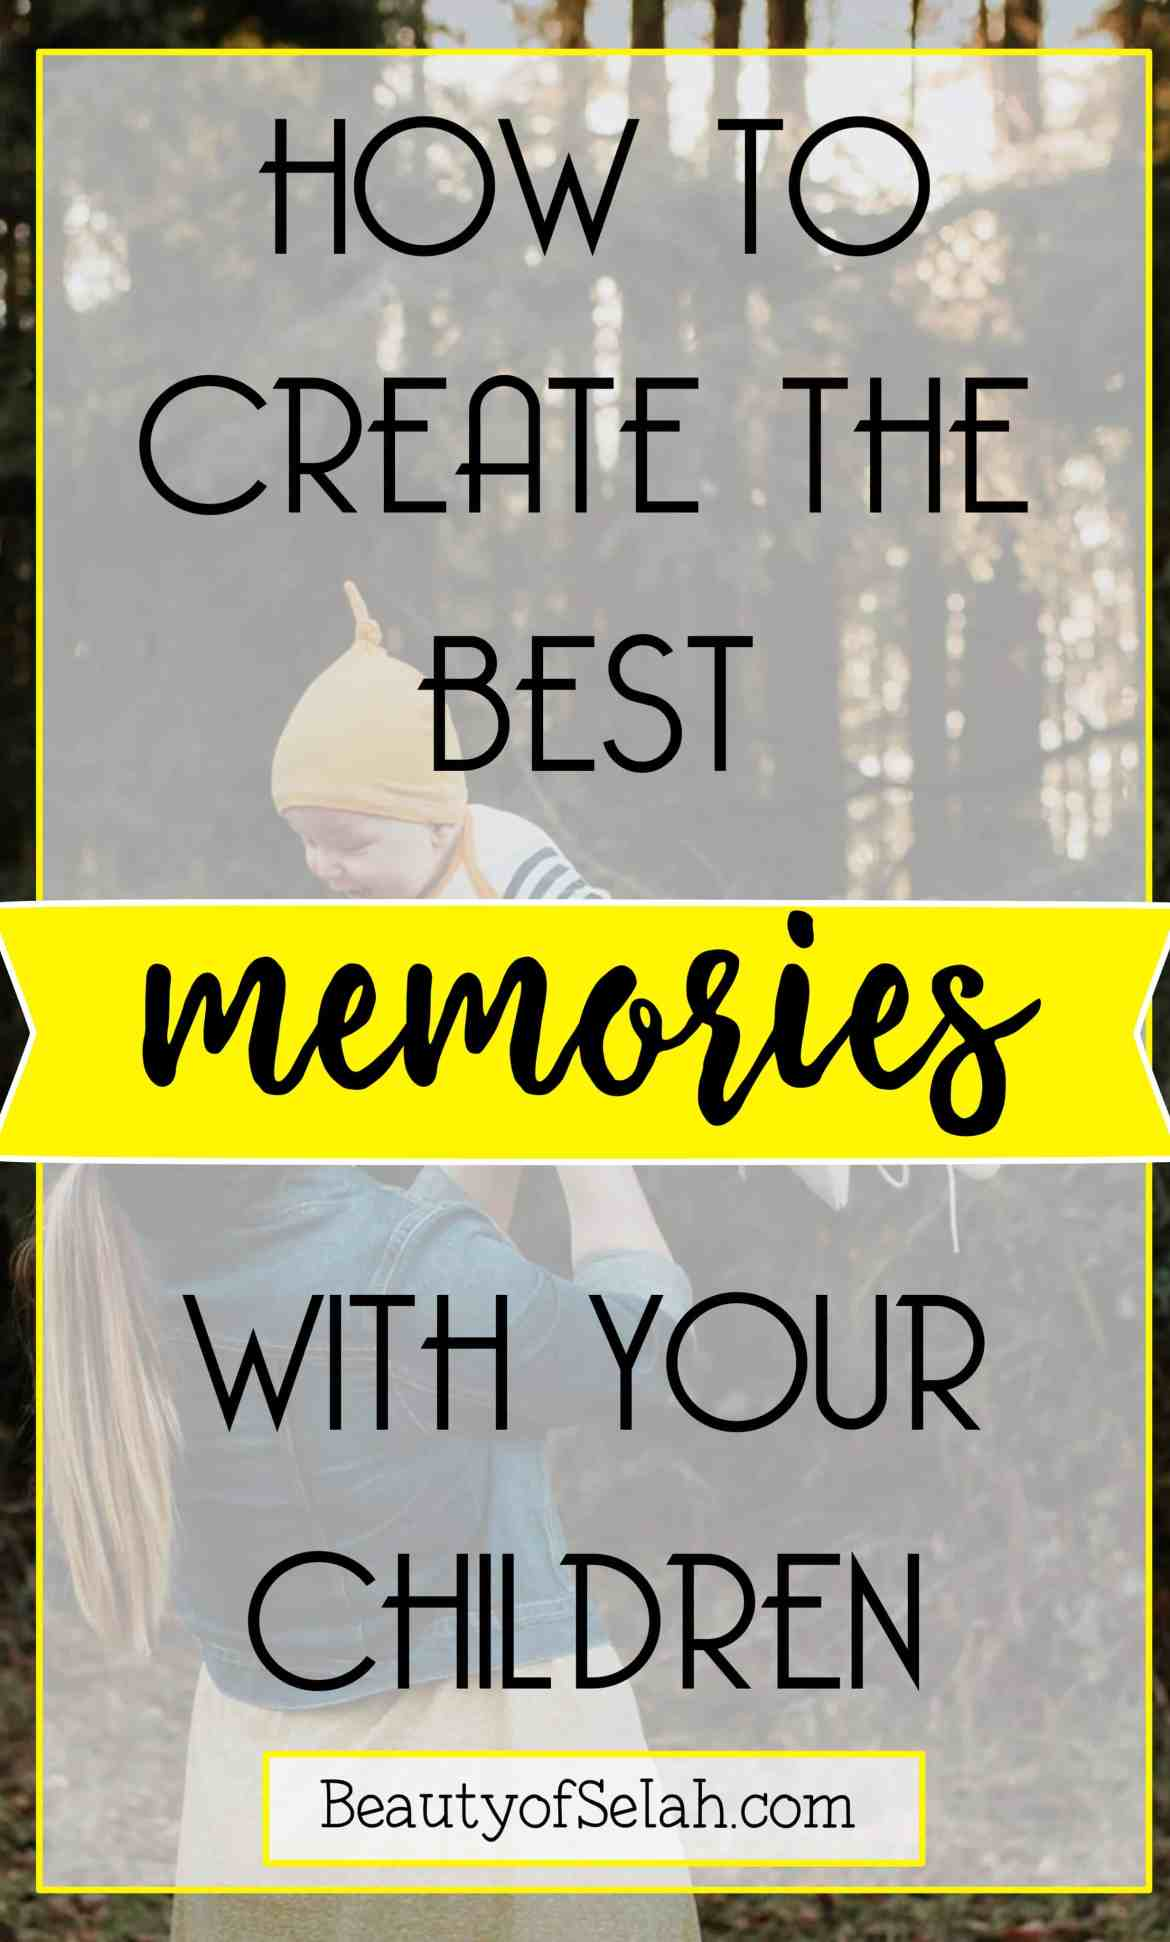 How to create the best memories with your children